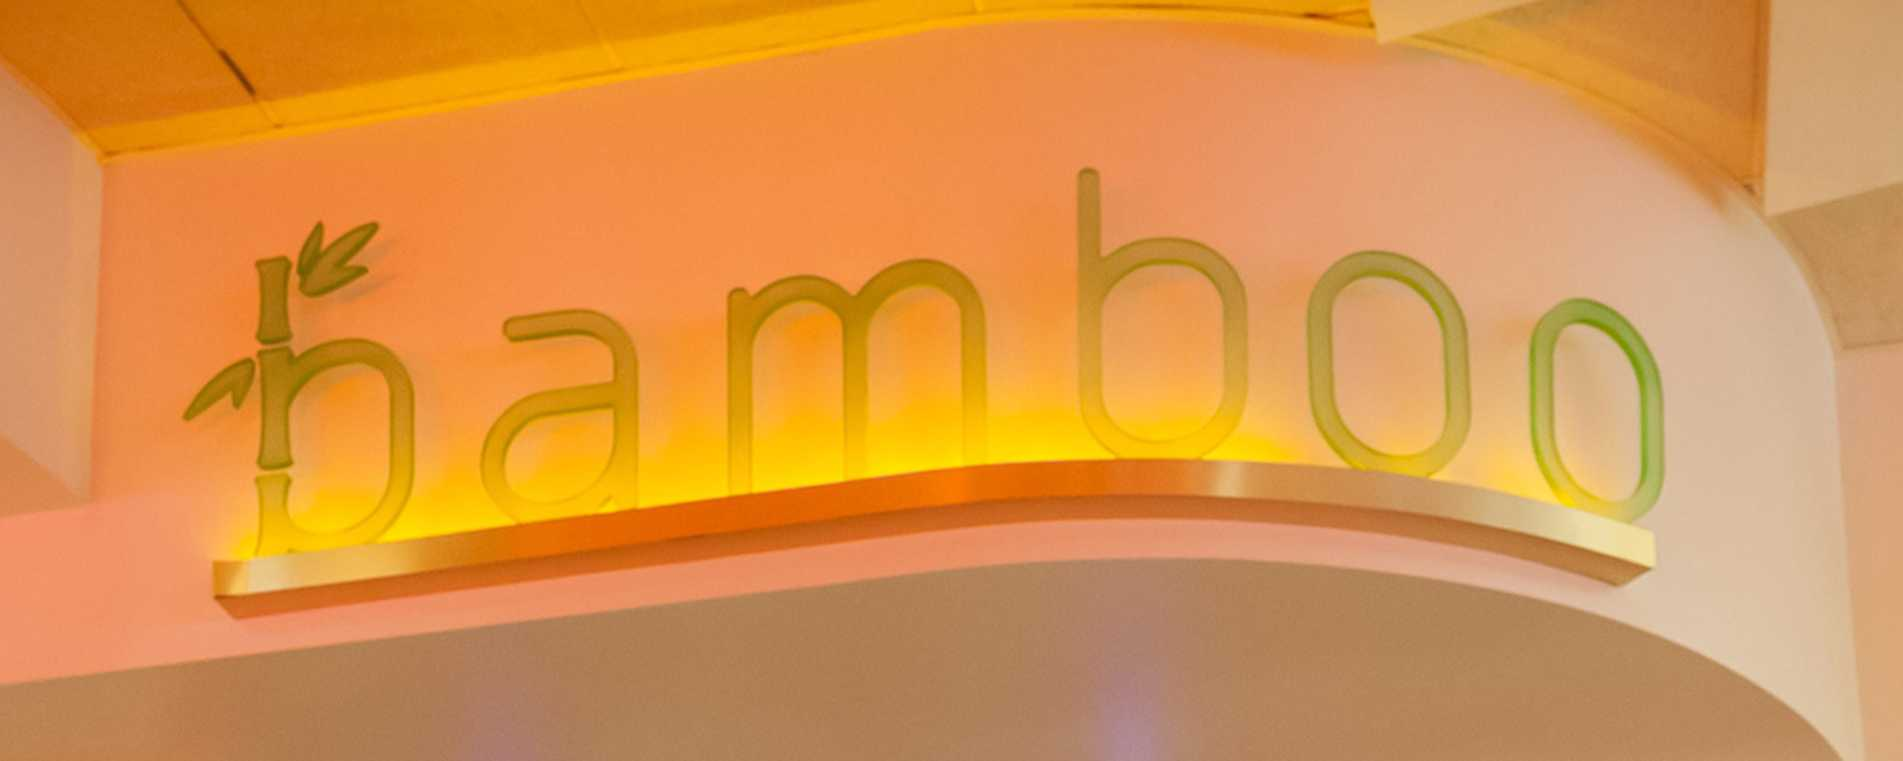 Bamboo Restaurant - Pechanga Resort & Casino